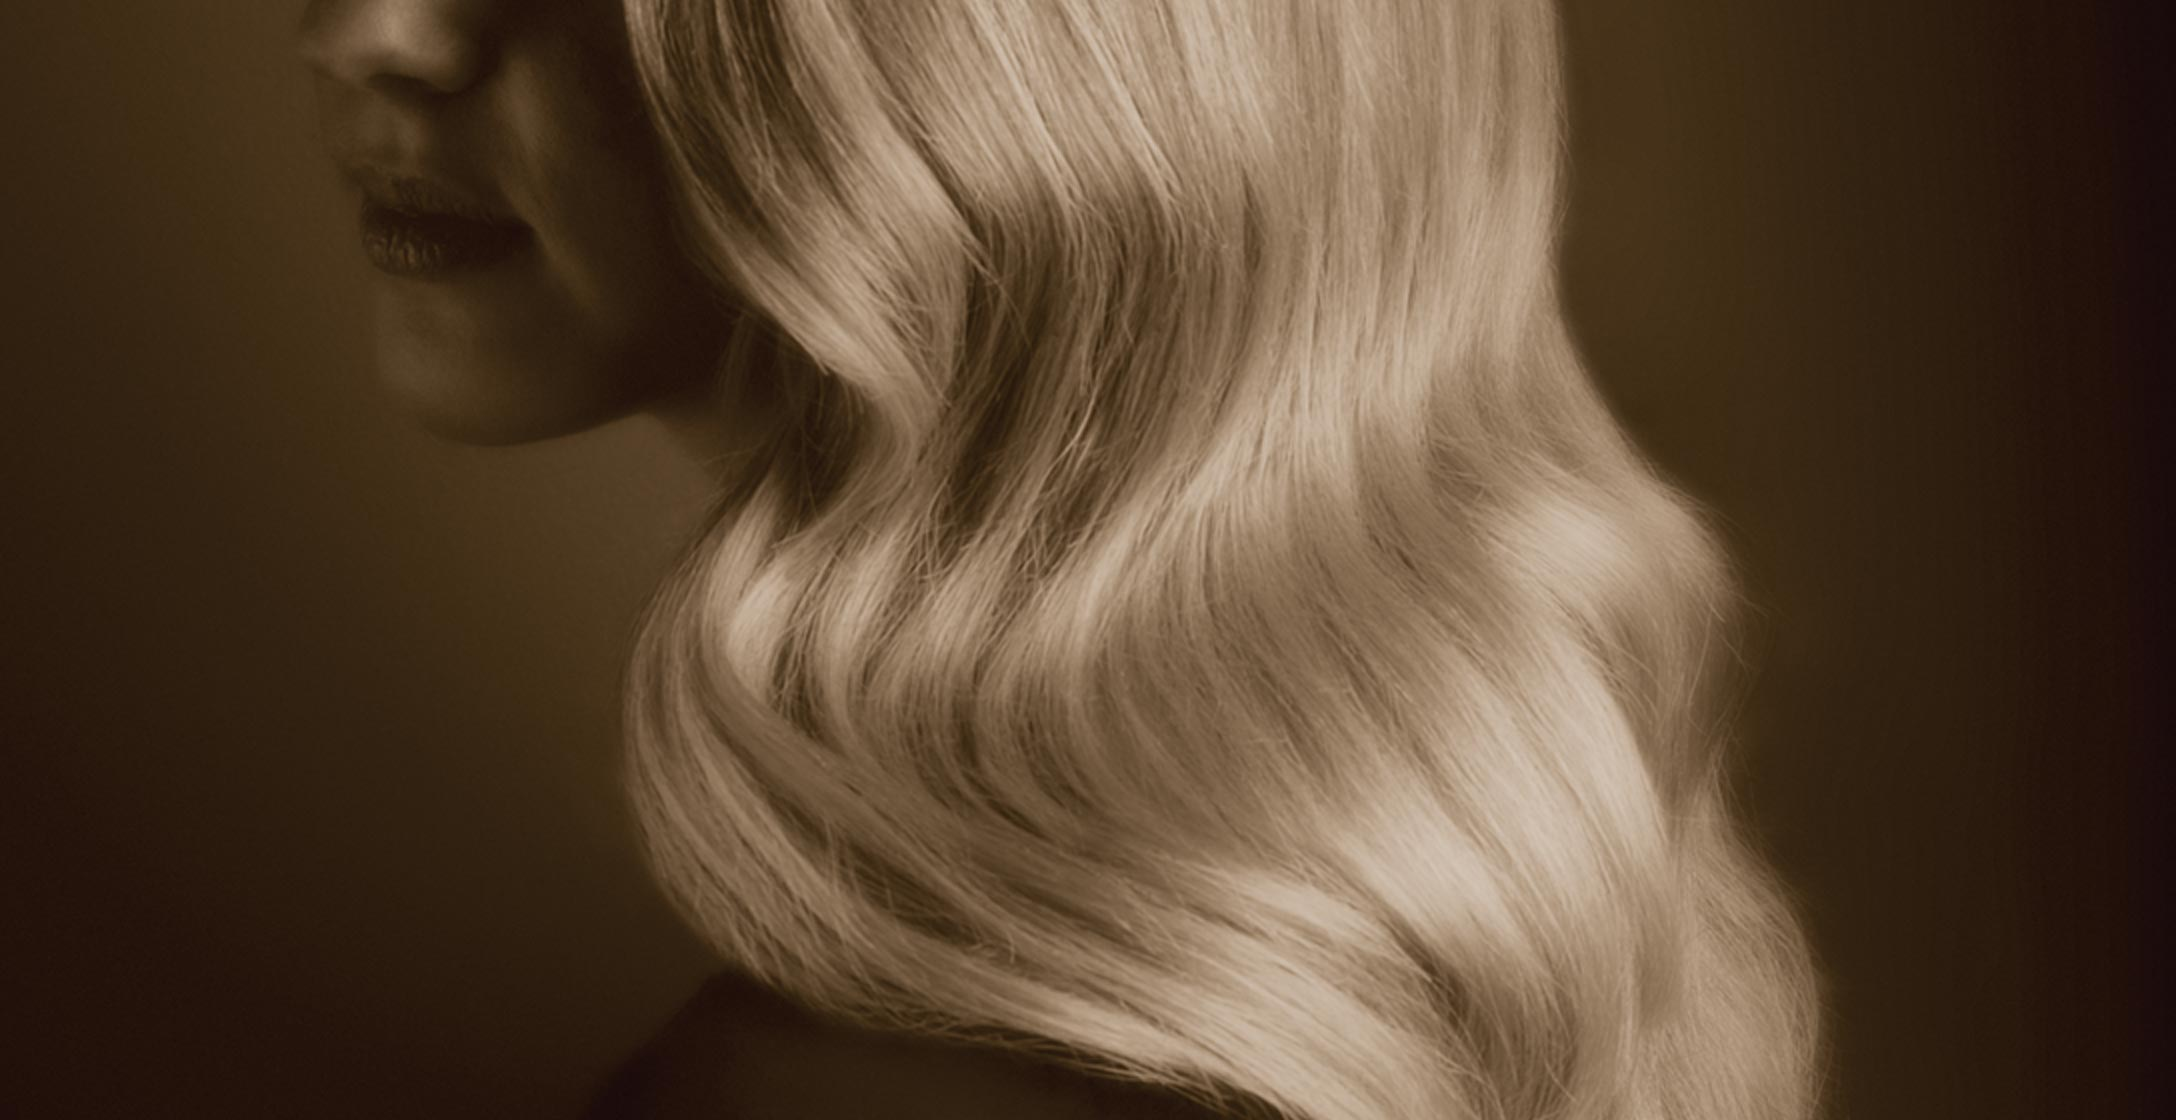 A woman's head in profile with long, waved, blond hair